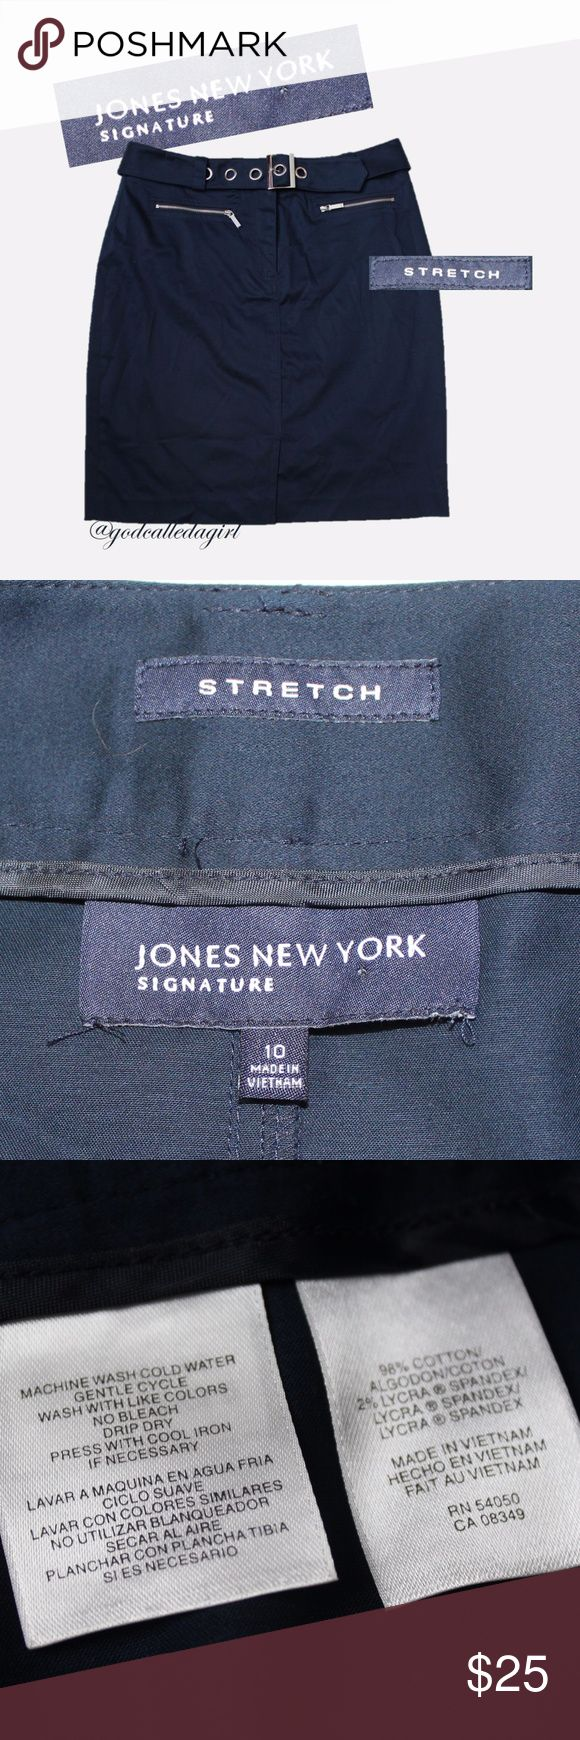 Jones New York Navy Skirt with Belt EUC Jones New York Navy Skirt with Belt.  Sz 10.  Zippered pockets and removable belt. Jones New York Skirts Midi